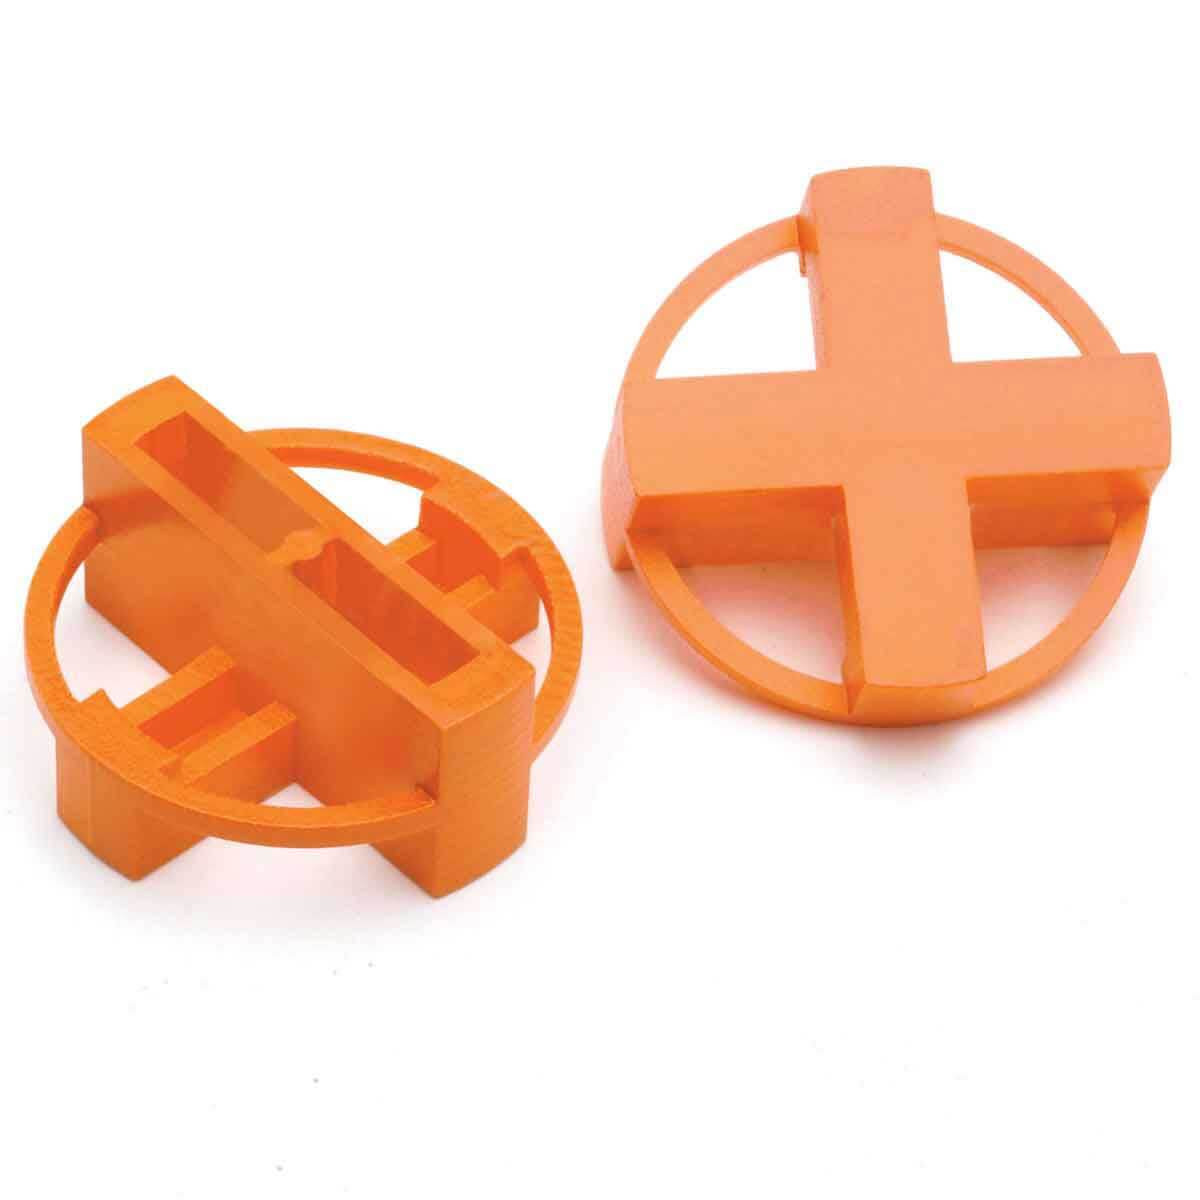 Orange Tavy 4-Corner View Tile Spacers 1006